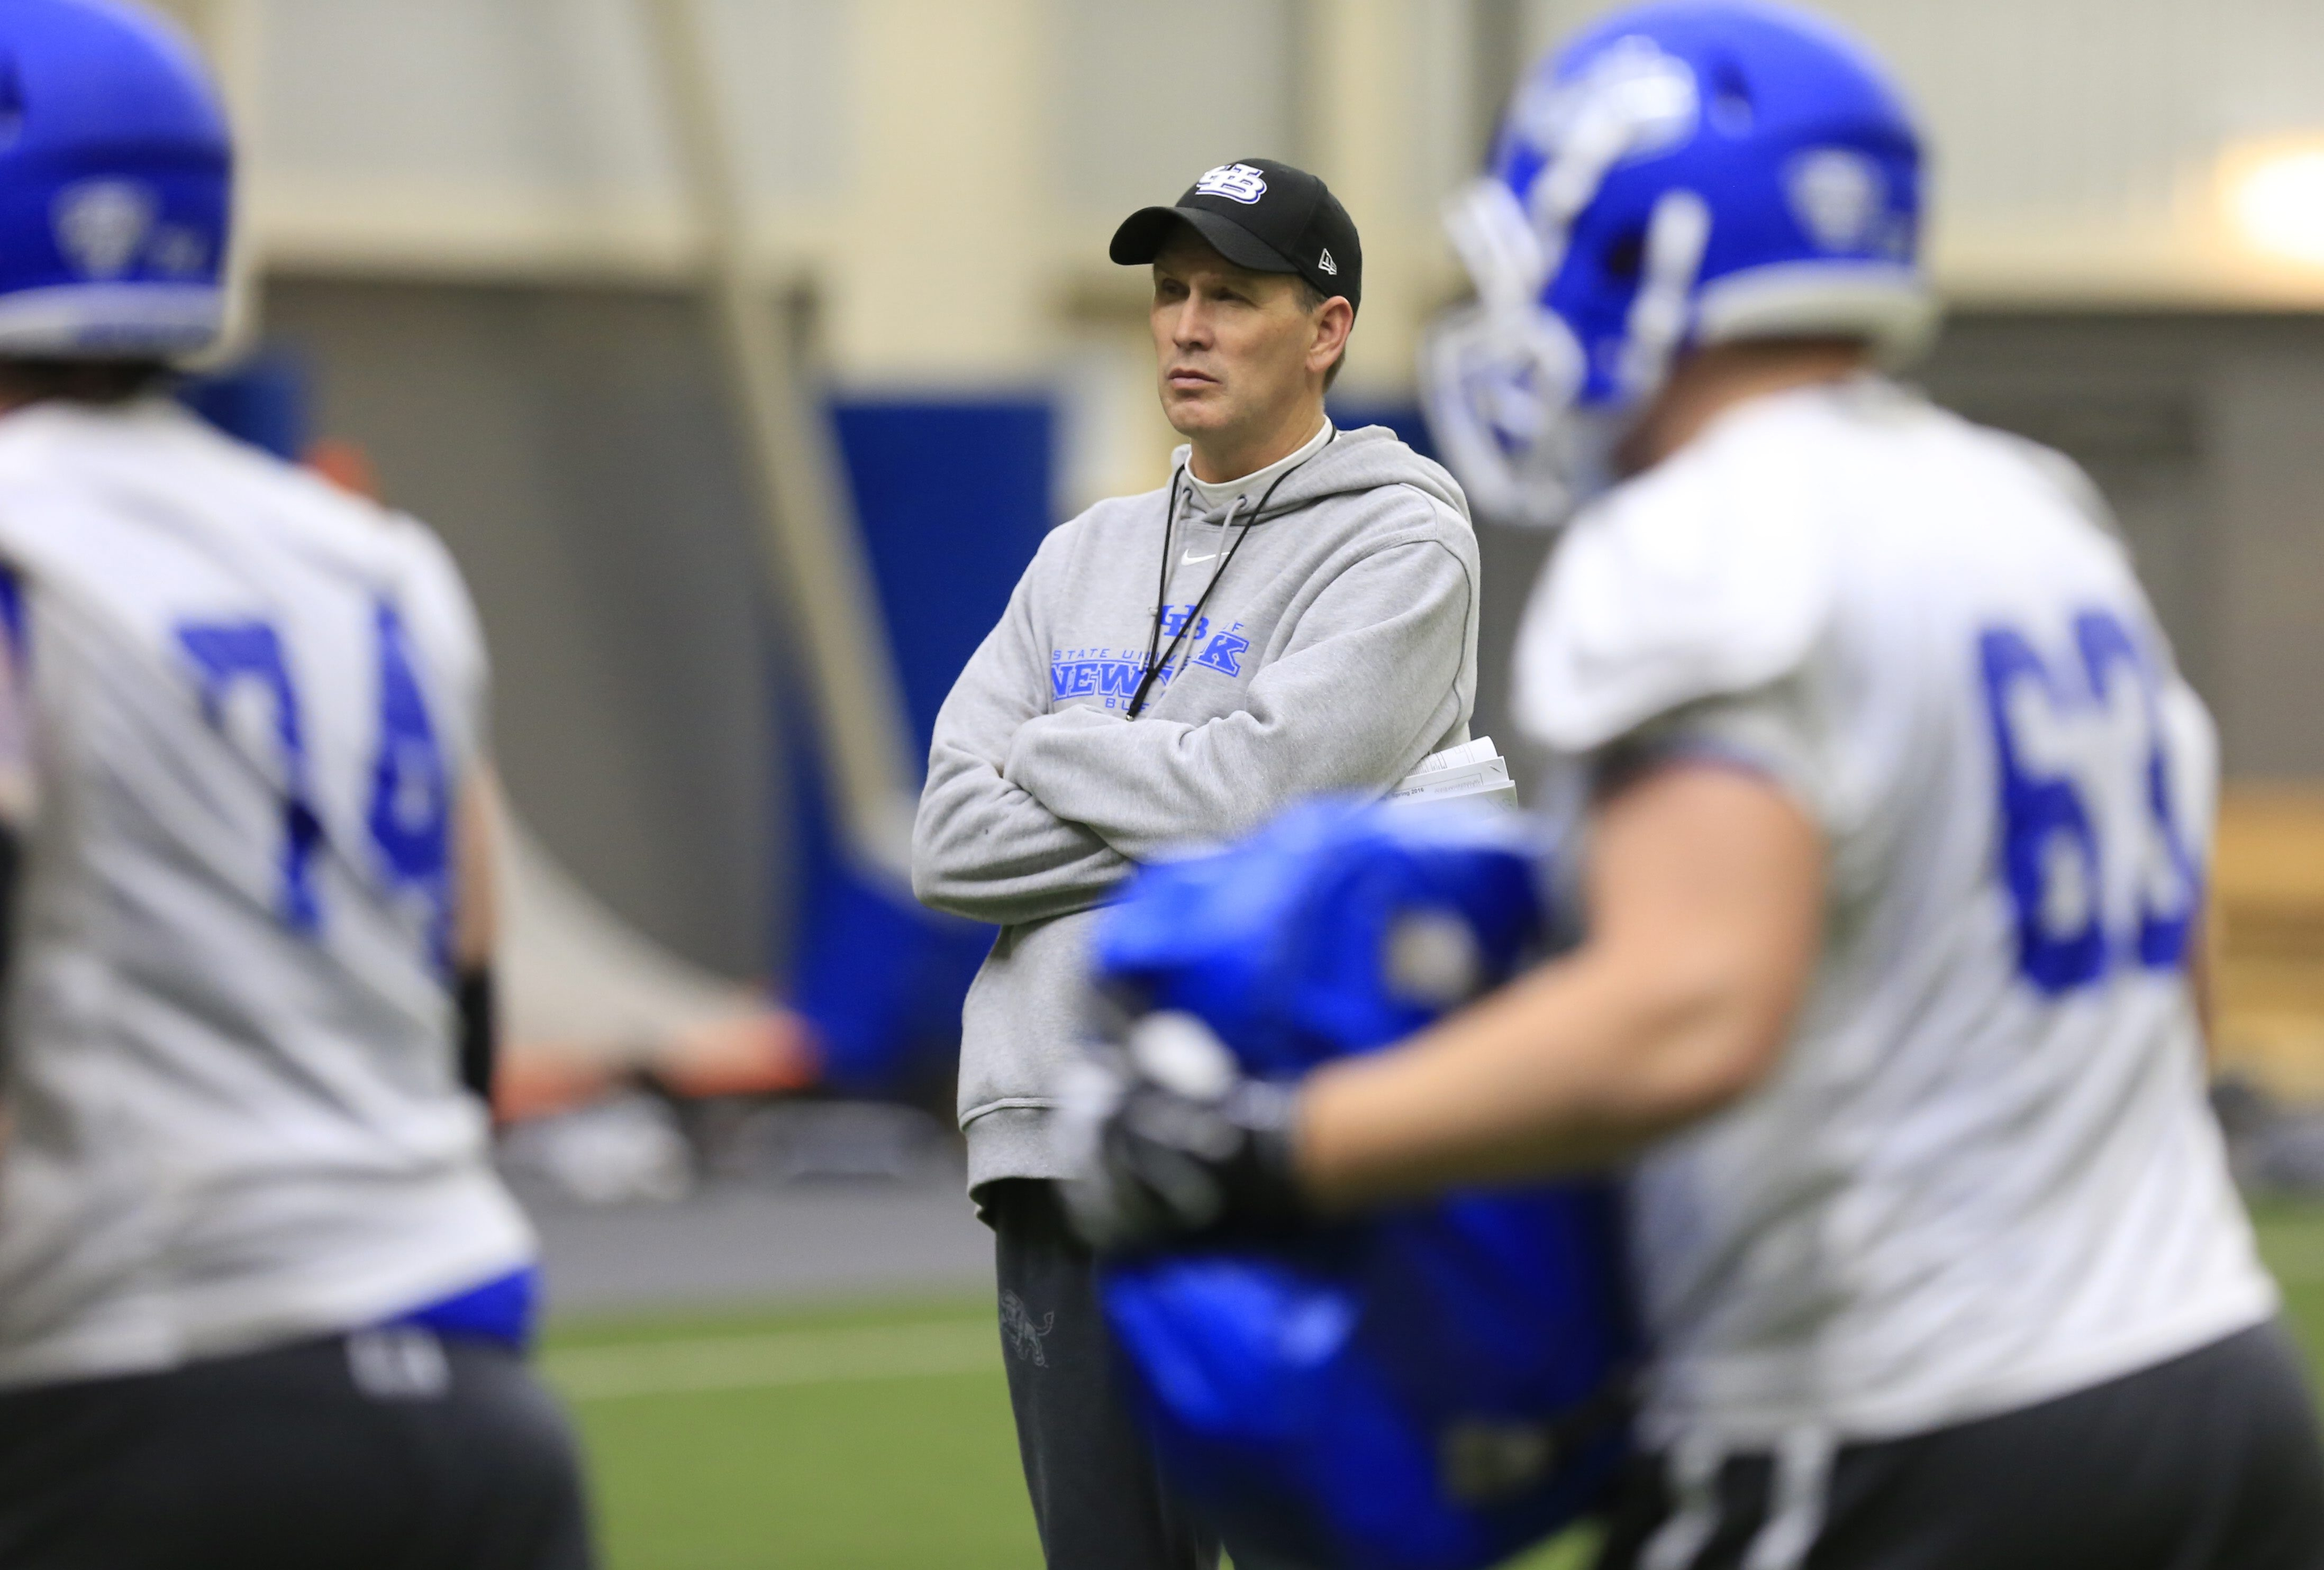 University at Buffalo head coach Lance Leipold is hoping that some transfers from junior college can add depth to his roster for the coming season.